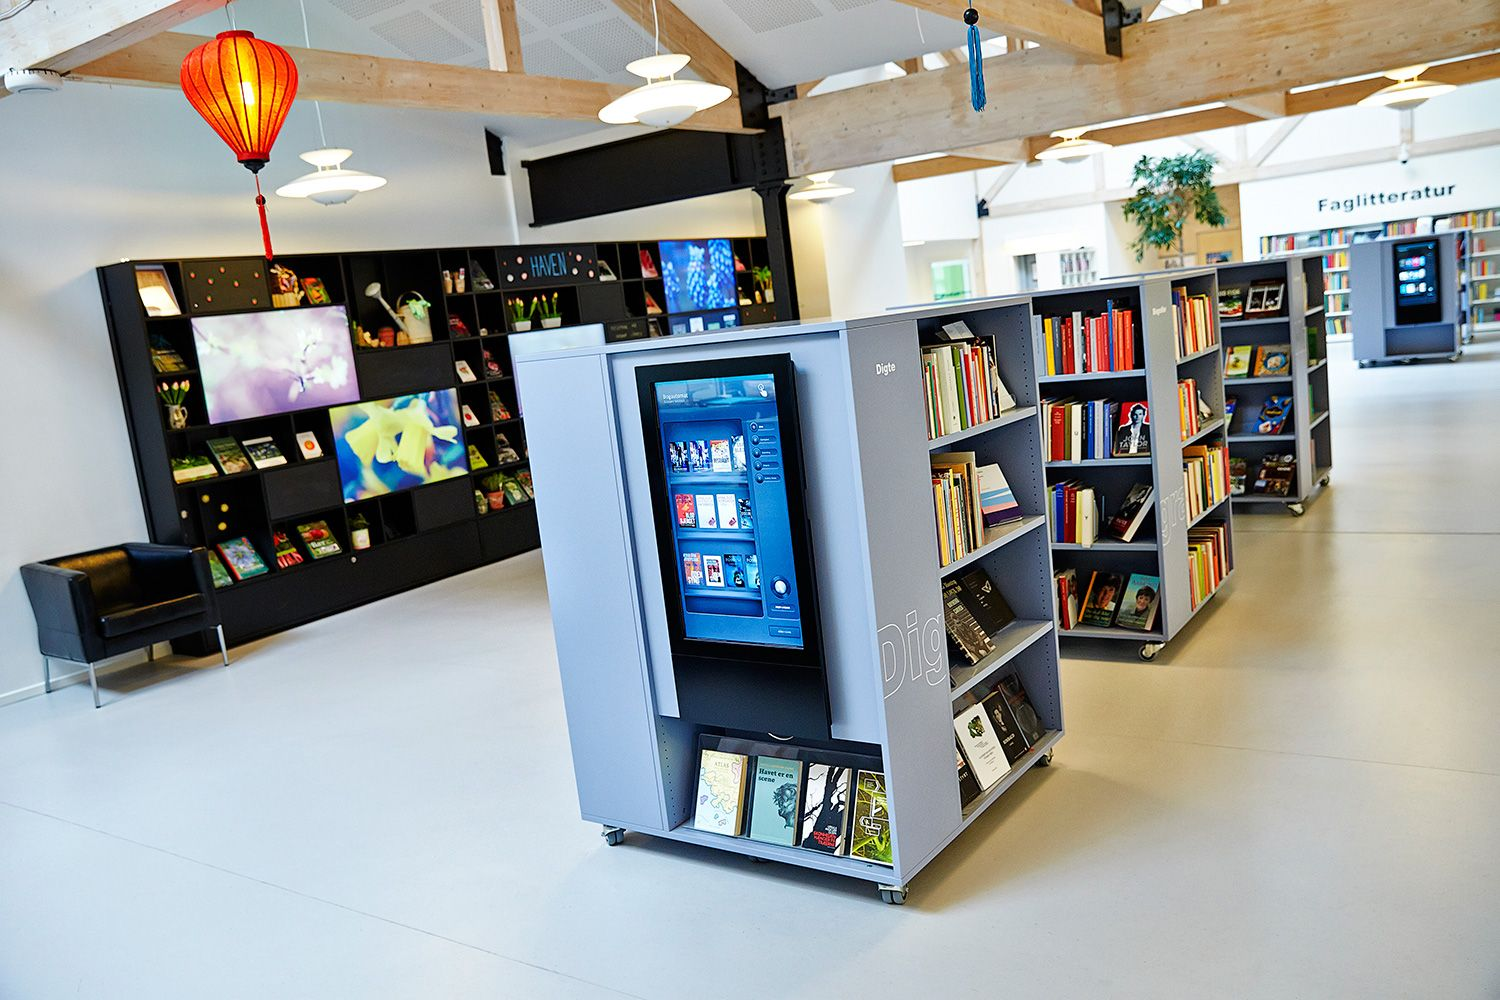 Interior design tips for making creative library themes Design Exhibit Pinterest Library